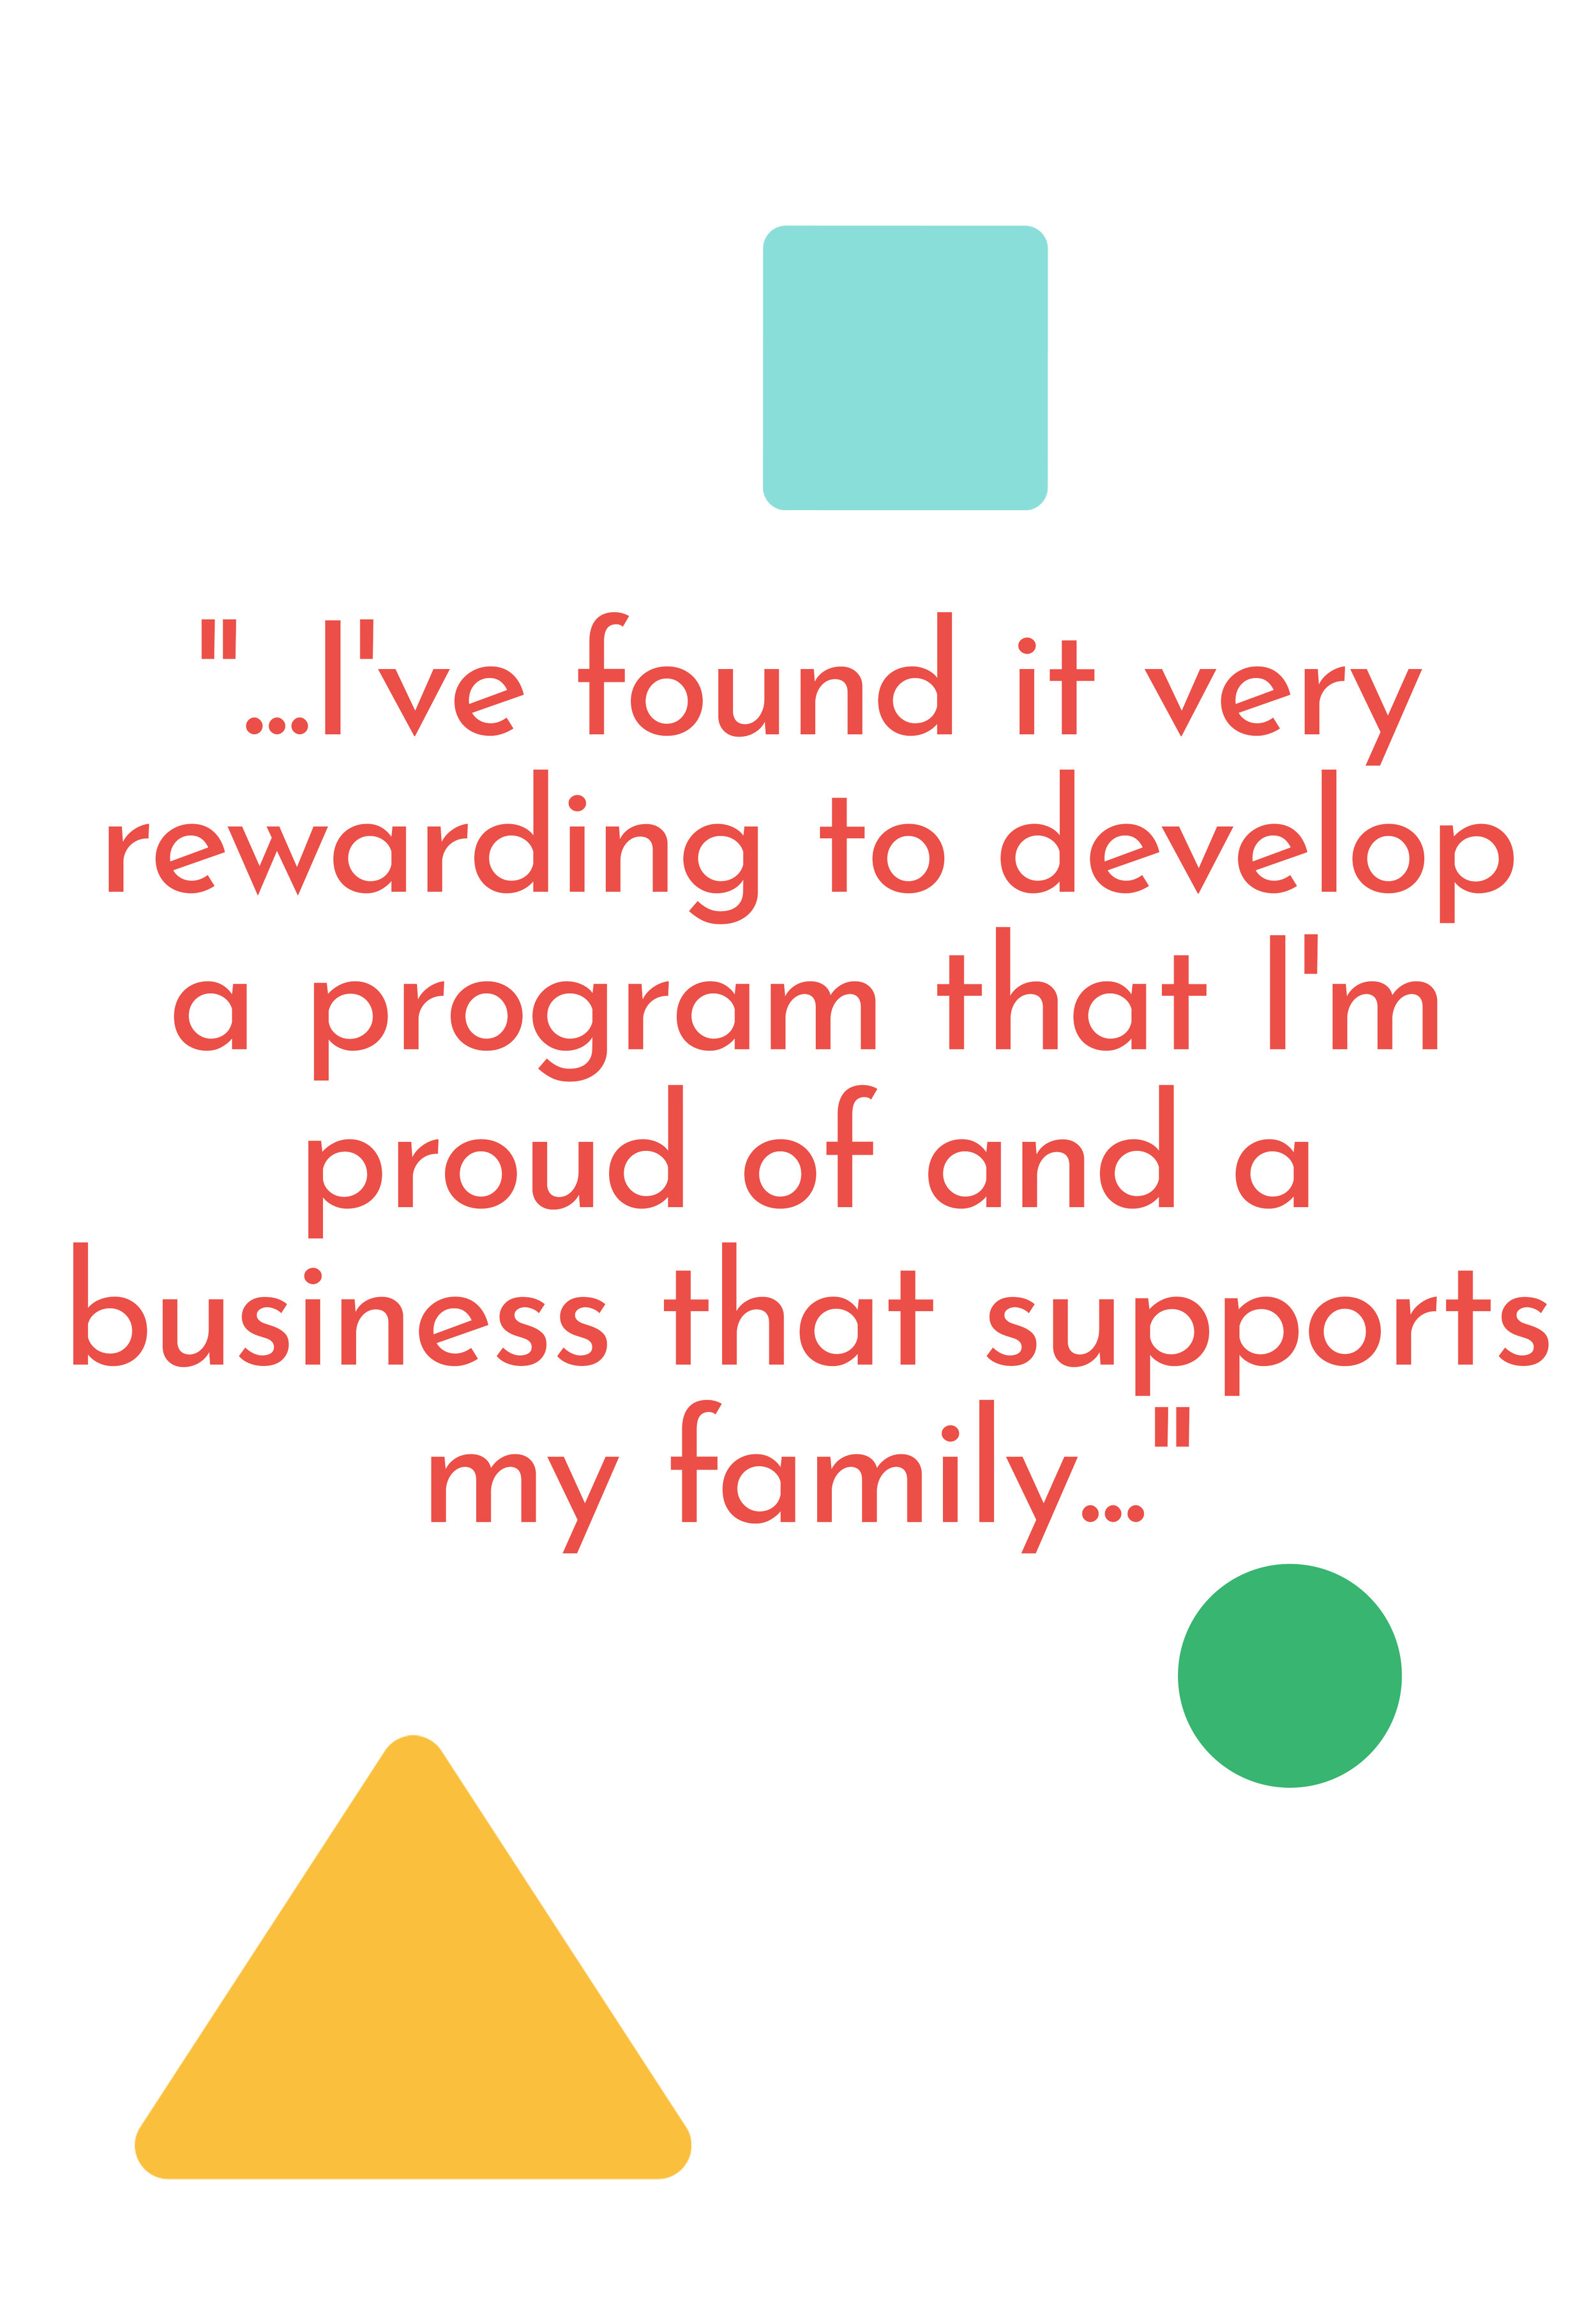 I've found it very rewarding to develop a program that I'm proud of and a business that supports my family - Laynie Leek on her child care career